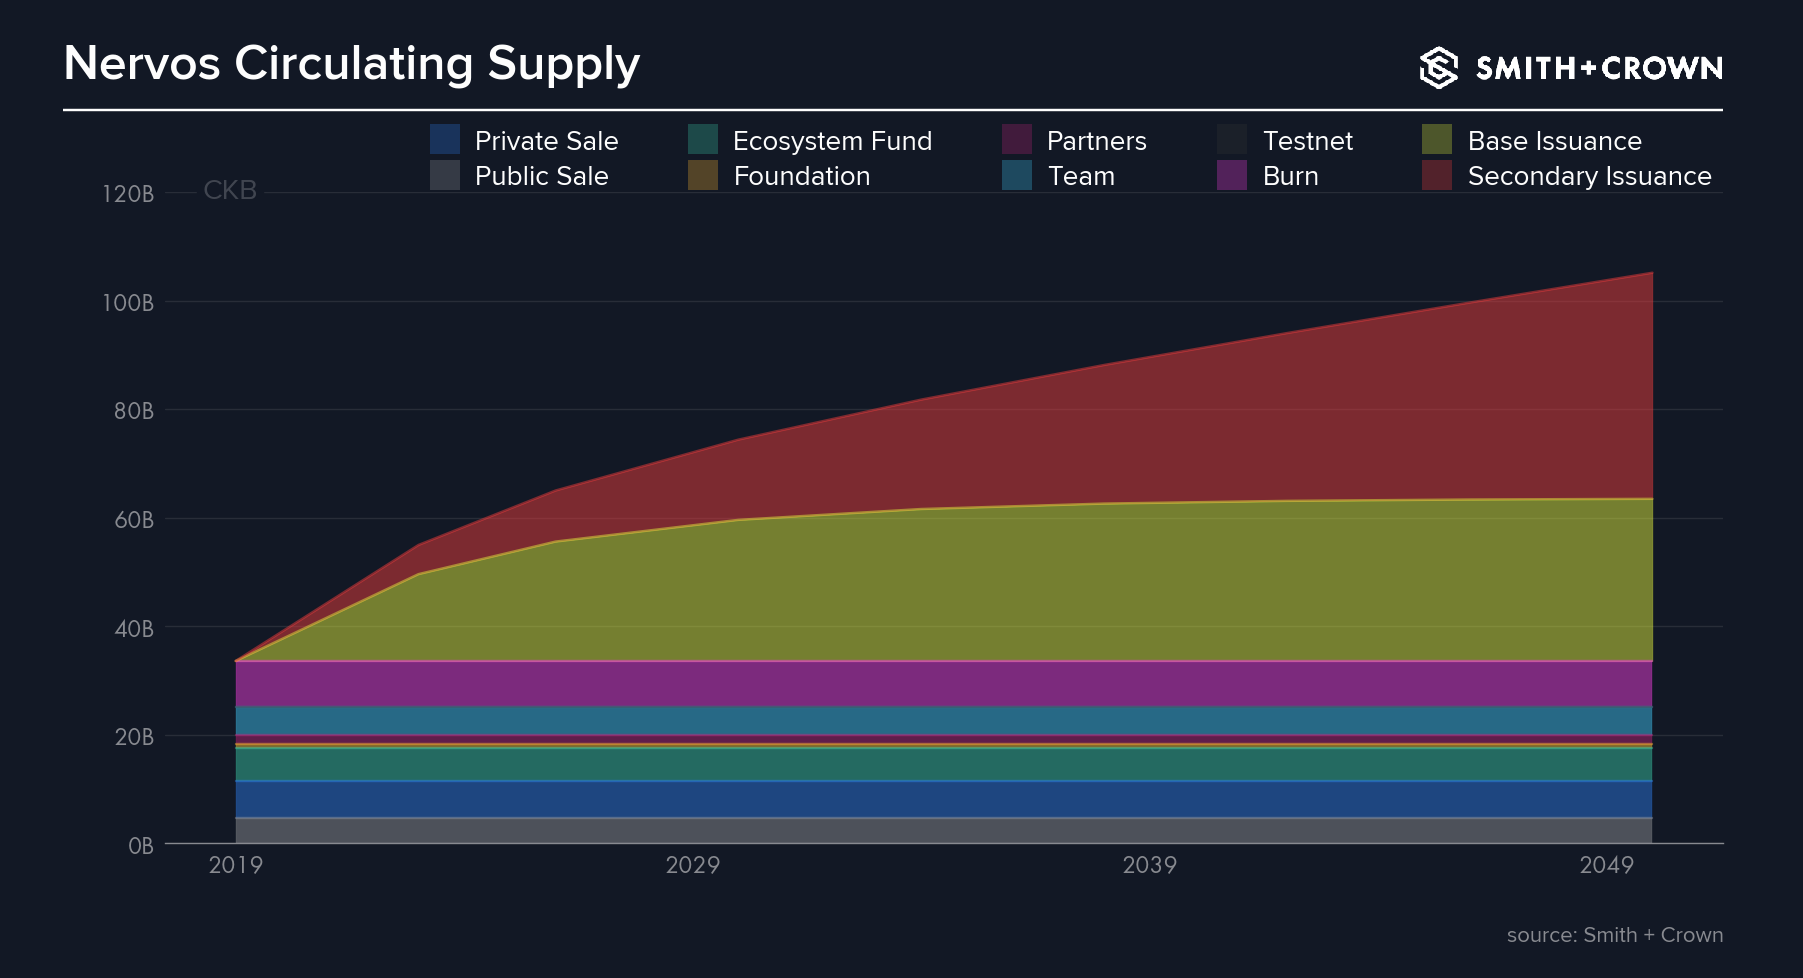 A graph of how Nervos cryptoasset supply was distributed and how the supply changes over time.